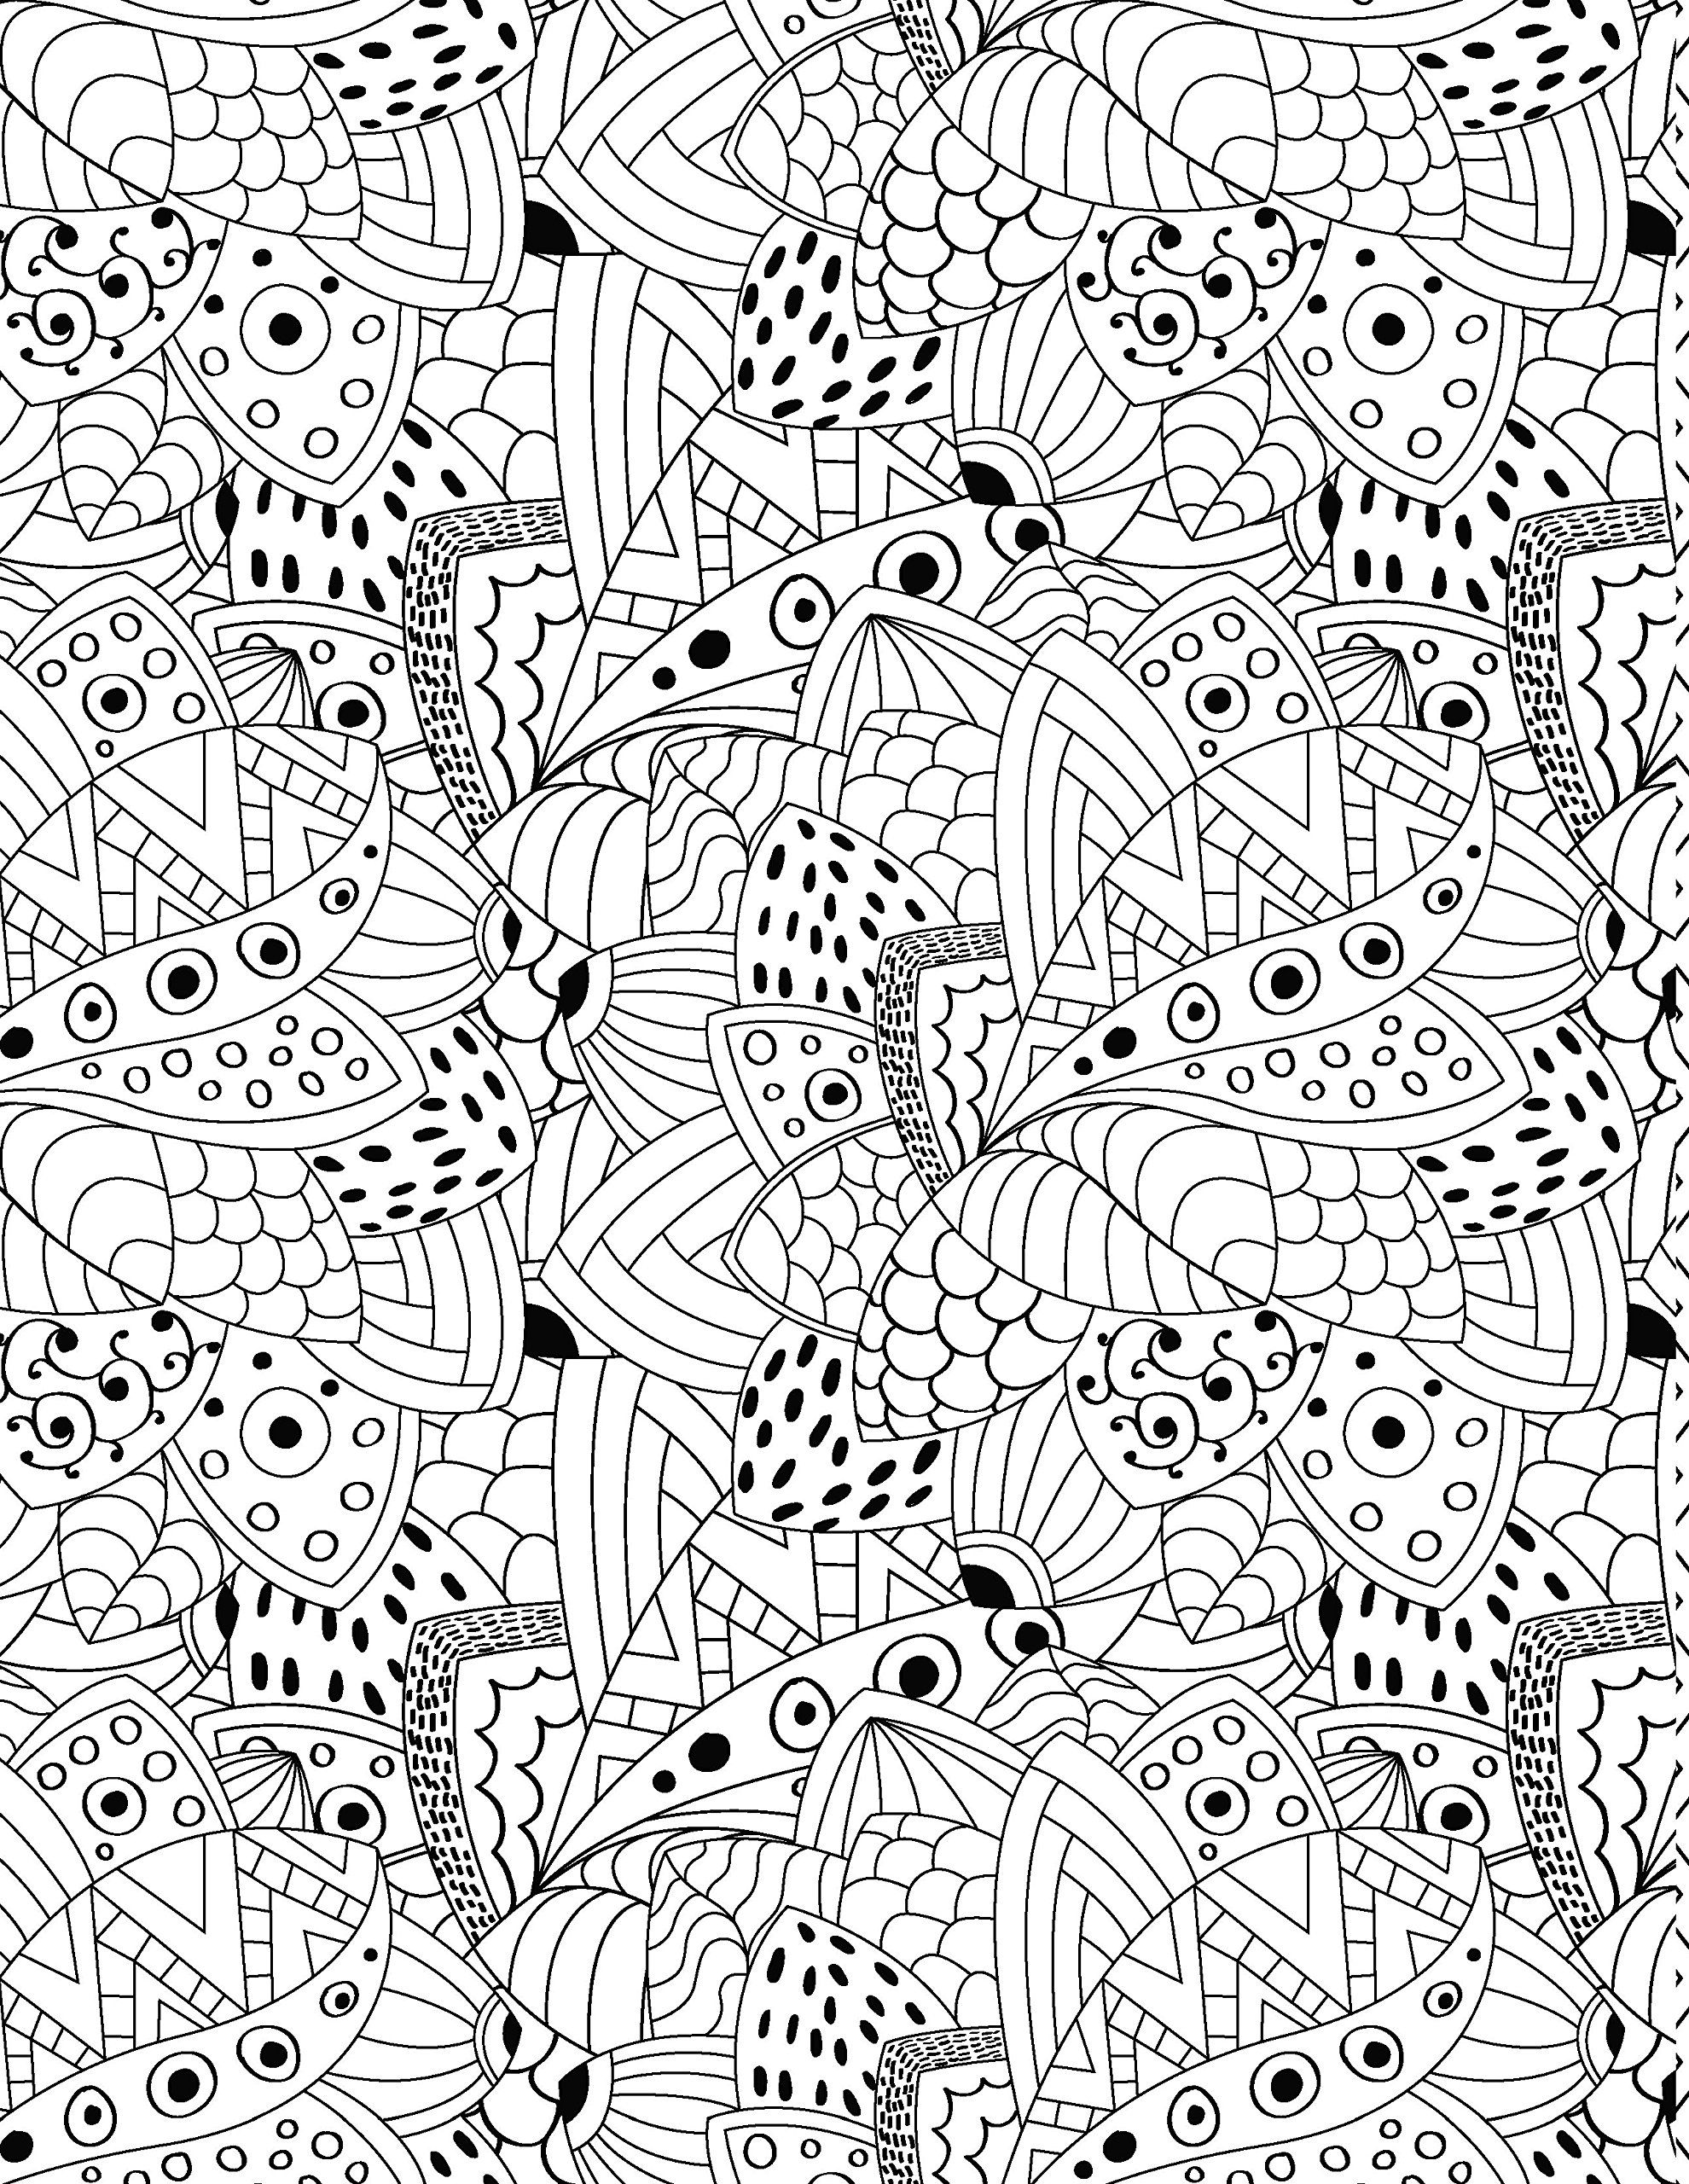 Dazzling Patterns A Gorgeous Coloring Book With More Than 120 Illustrations To Complete Just Add Color Coloring Books Pattern Coloring Pages Coloring Pages